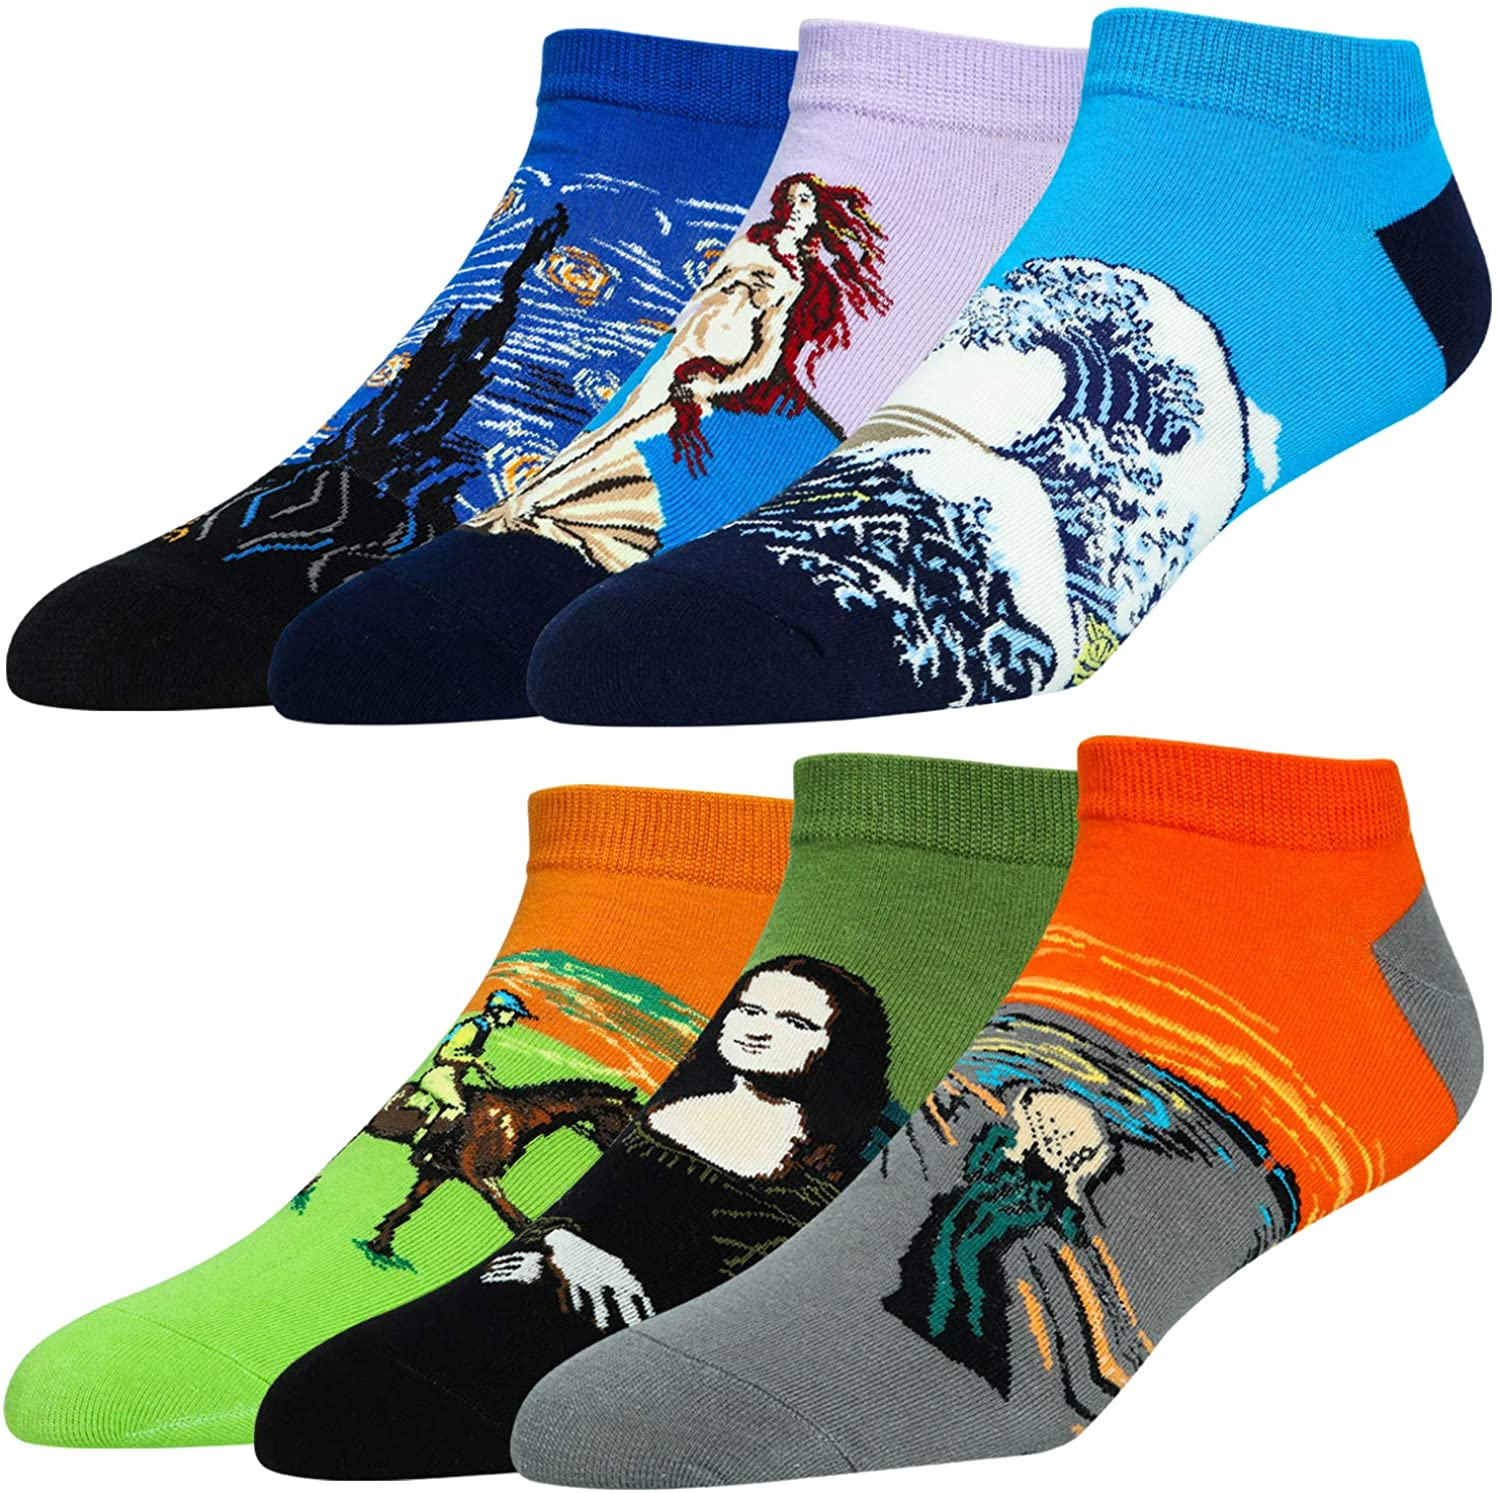 6 Pairs Novelty No Show Socks Men Ankle Cotton Low Cut Fun Casual Crew Socks